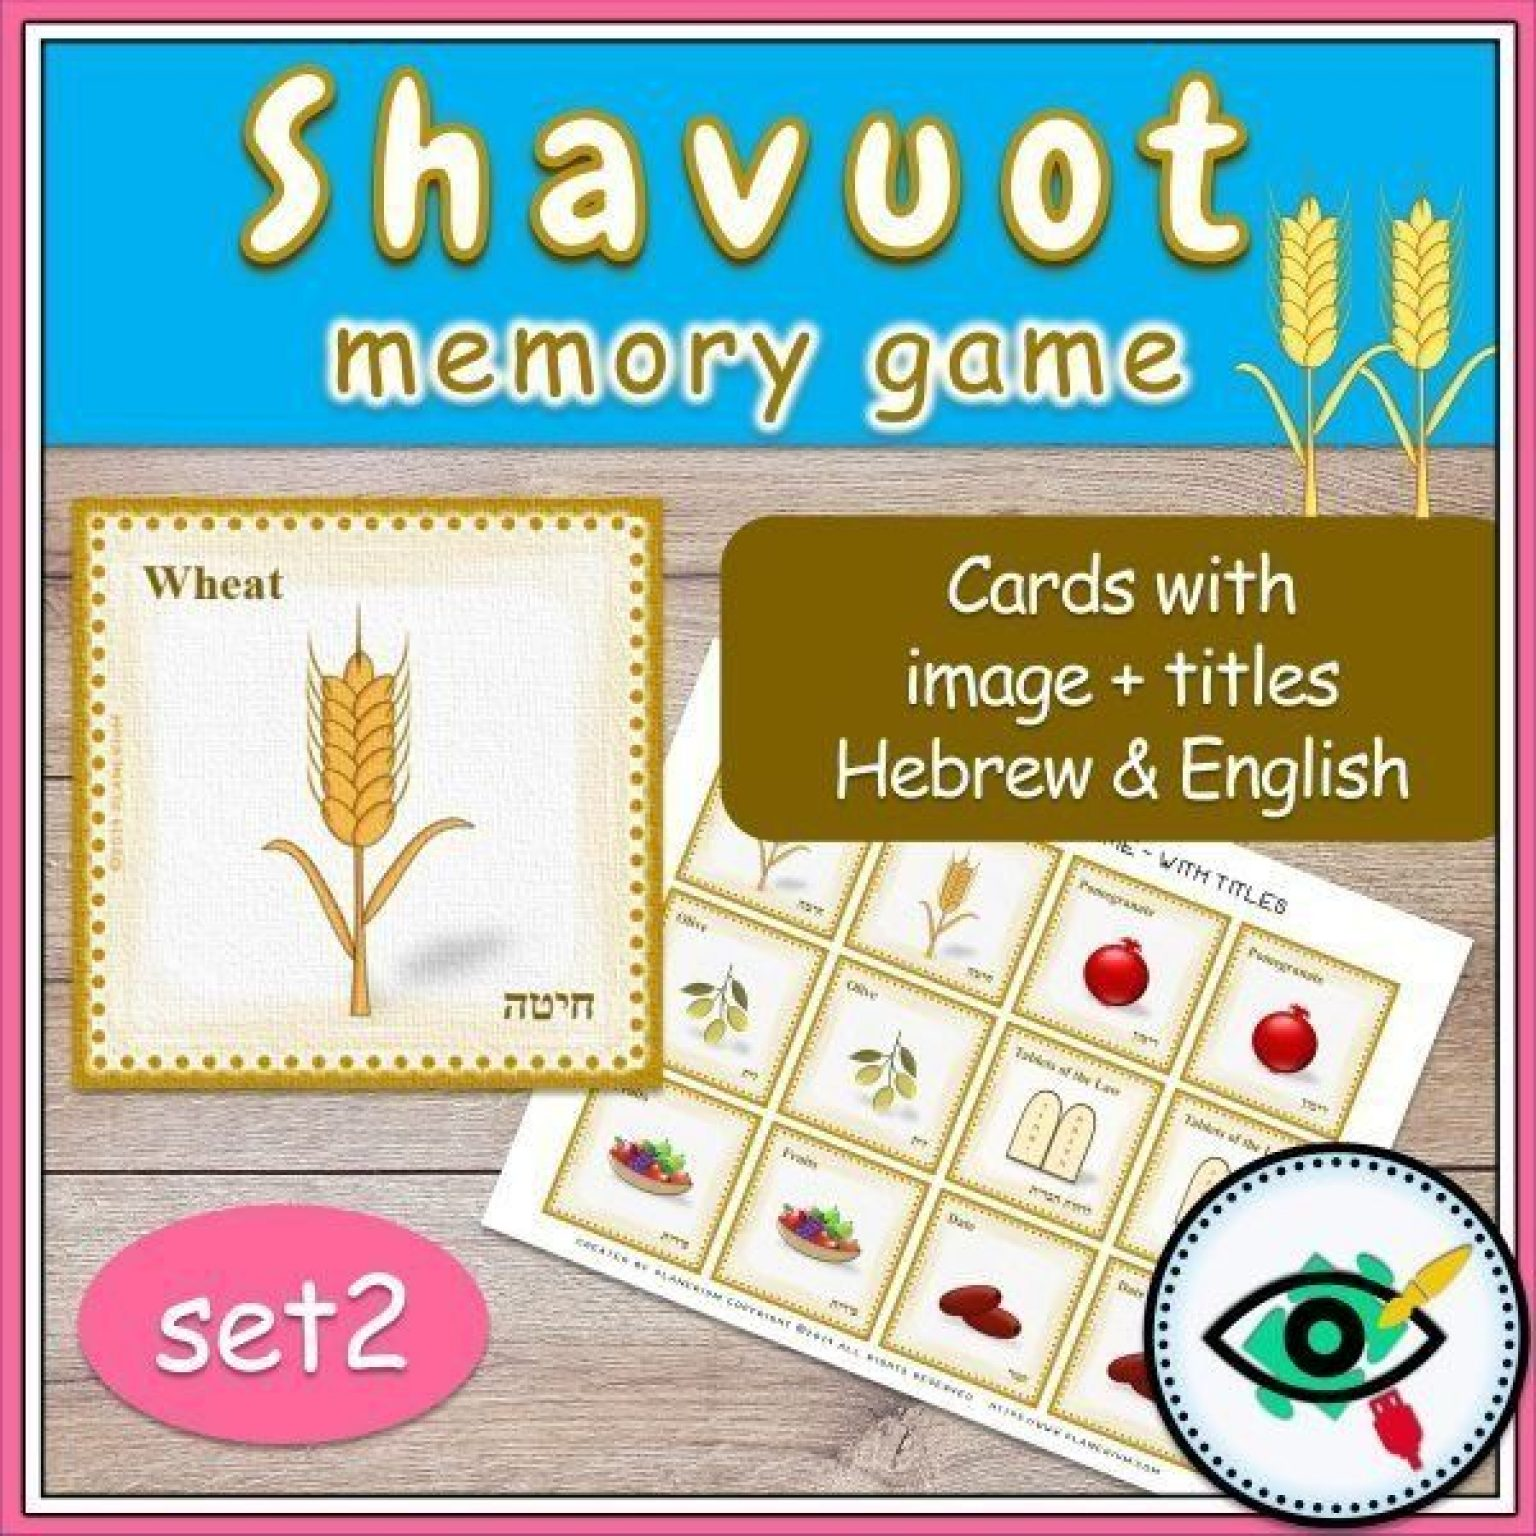 shavuot-memory-game-title3